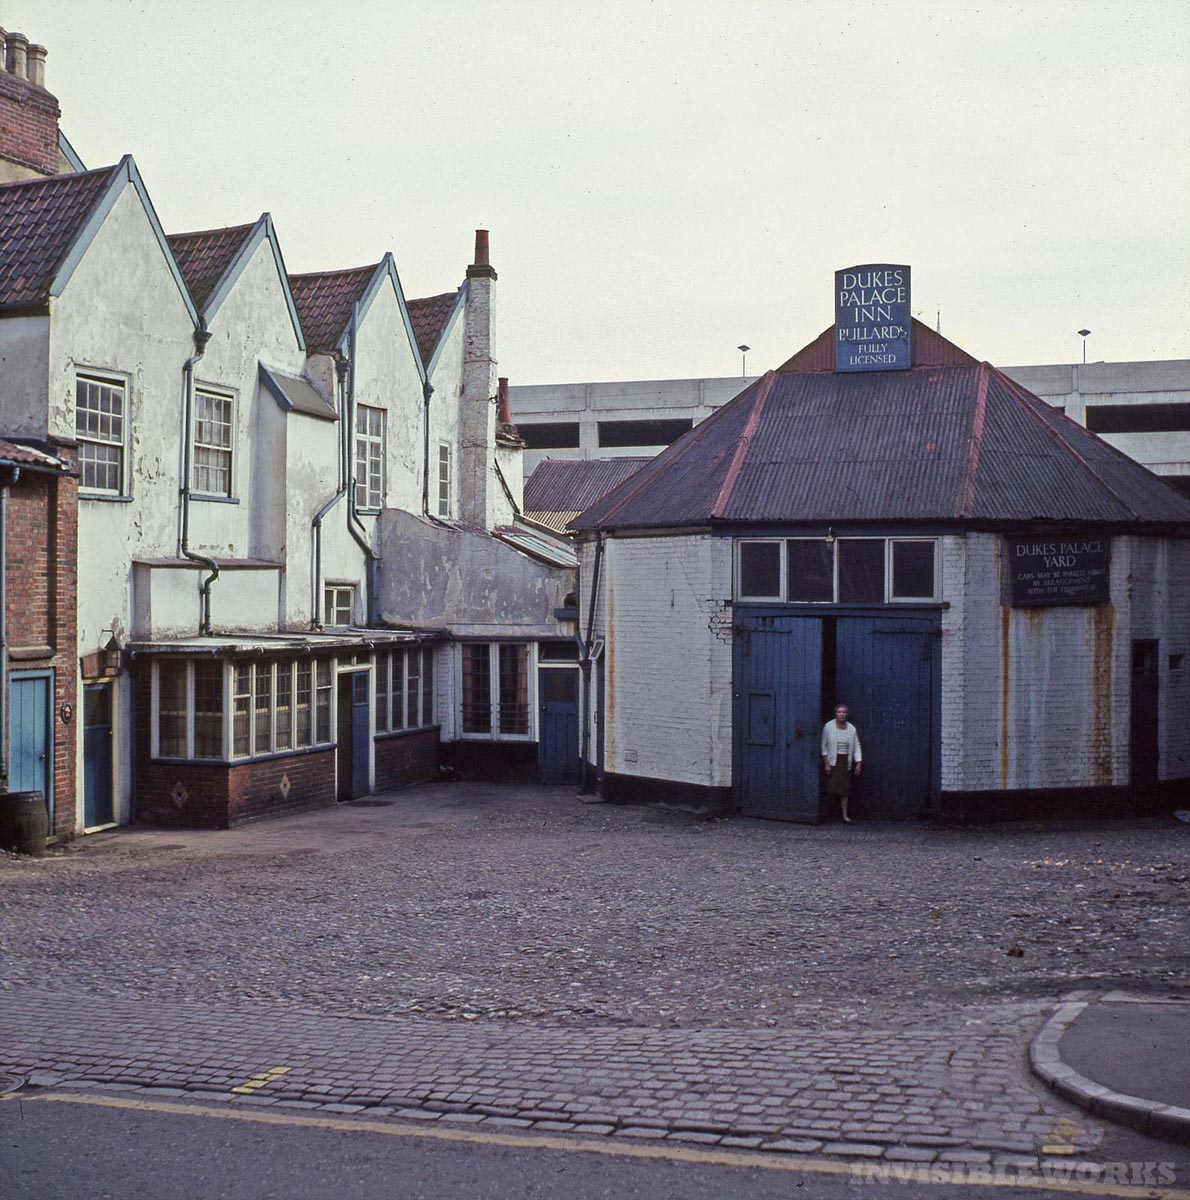 Through glass: Norwich 1960s – part 2, Pubs.